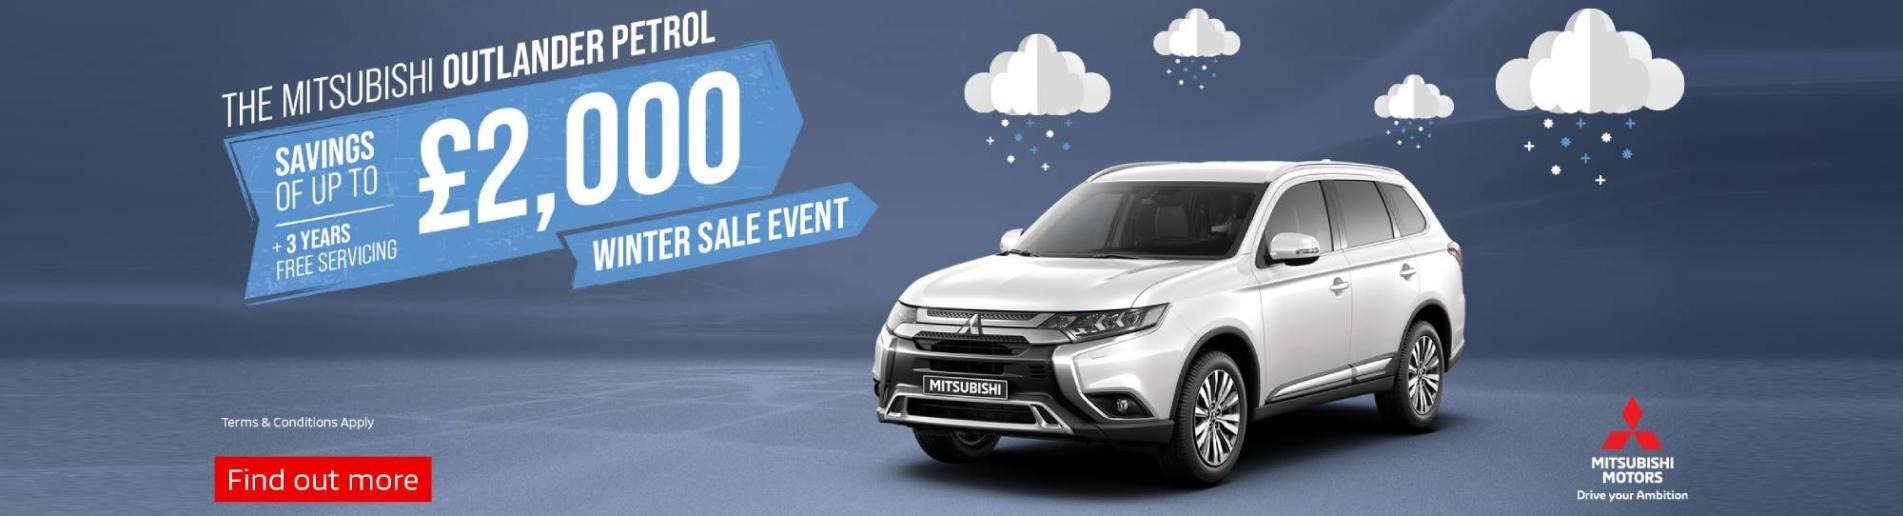 New Mitsubishi Vehicles for sale at Close Motor Company